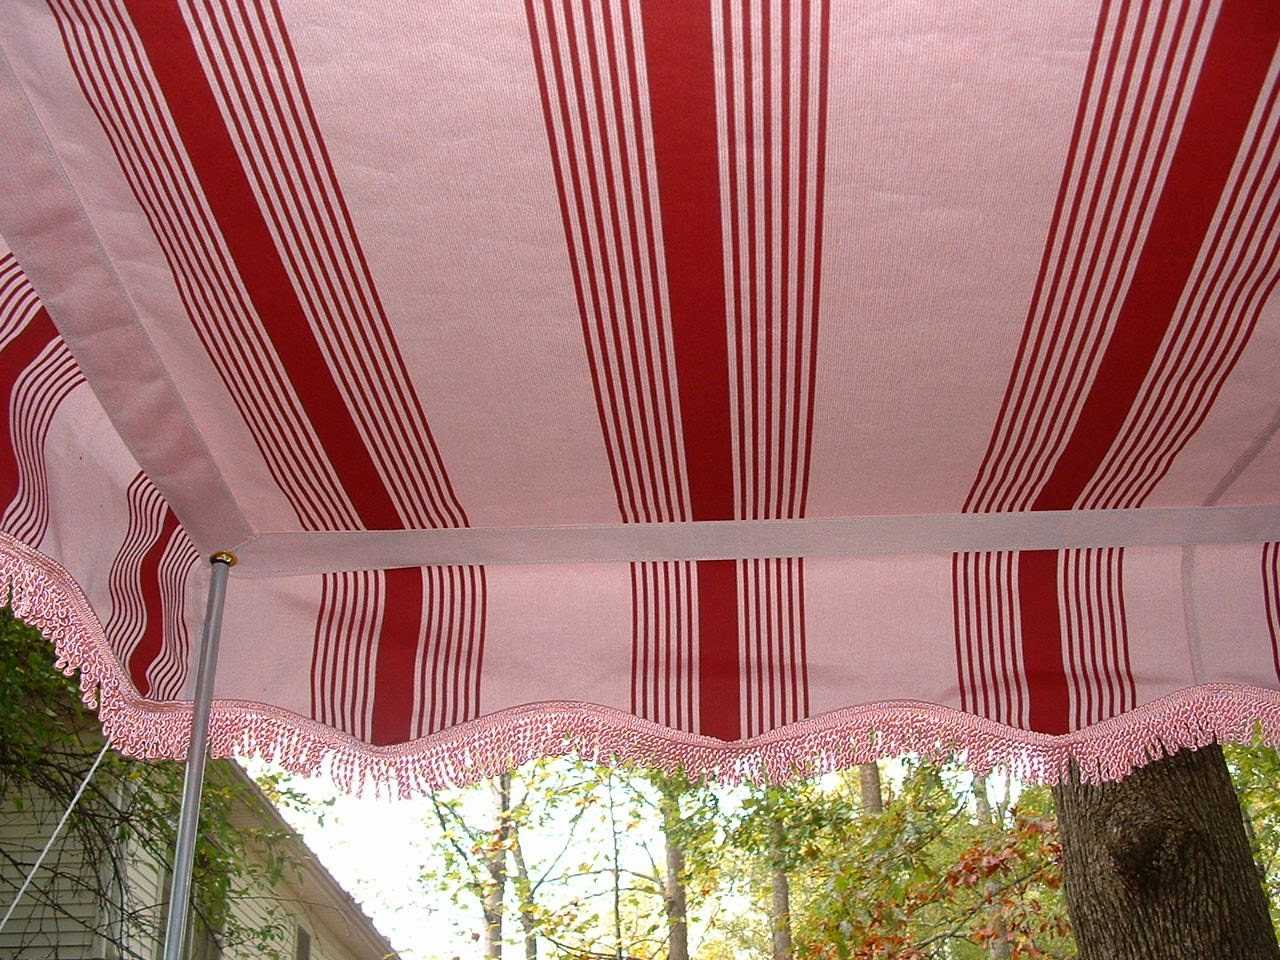 Vintage Awnings Vintage Trailer Awnings For Sale